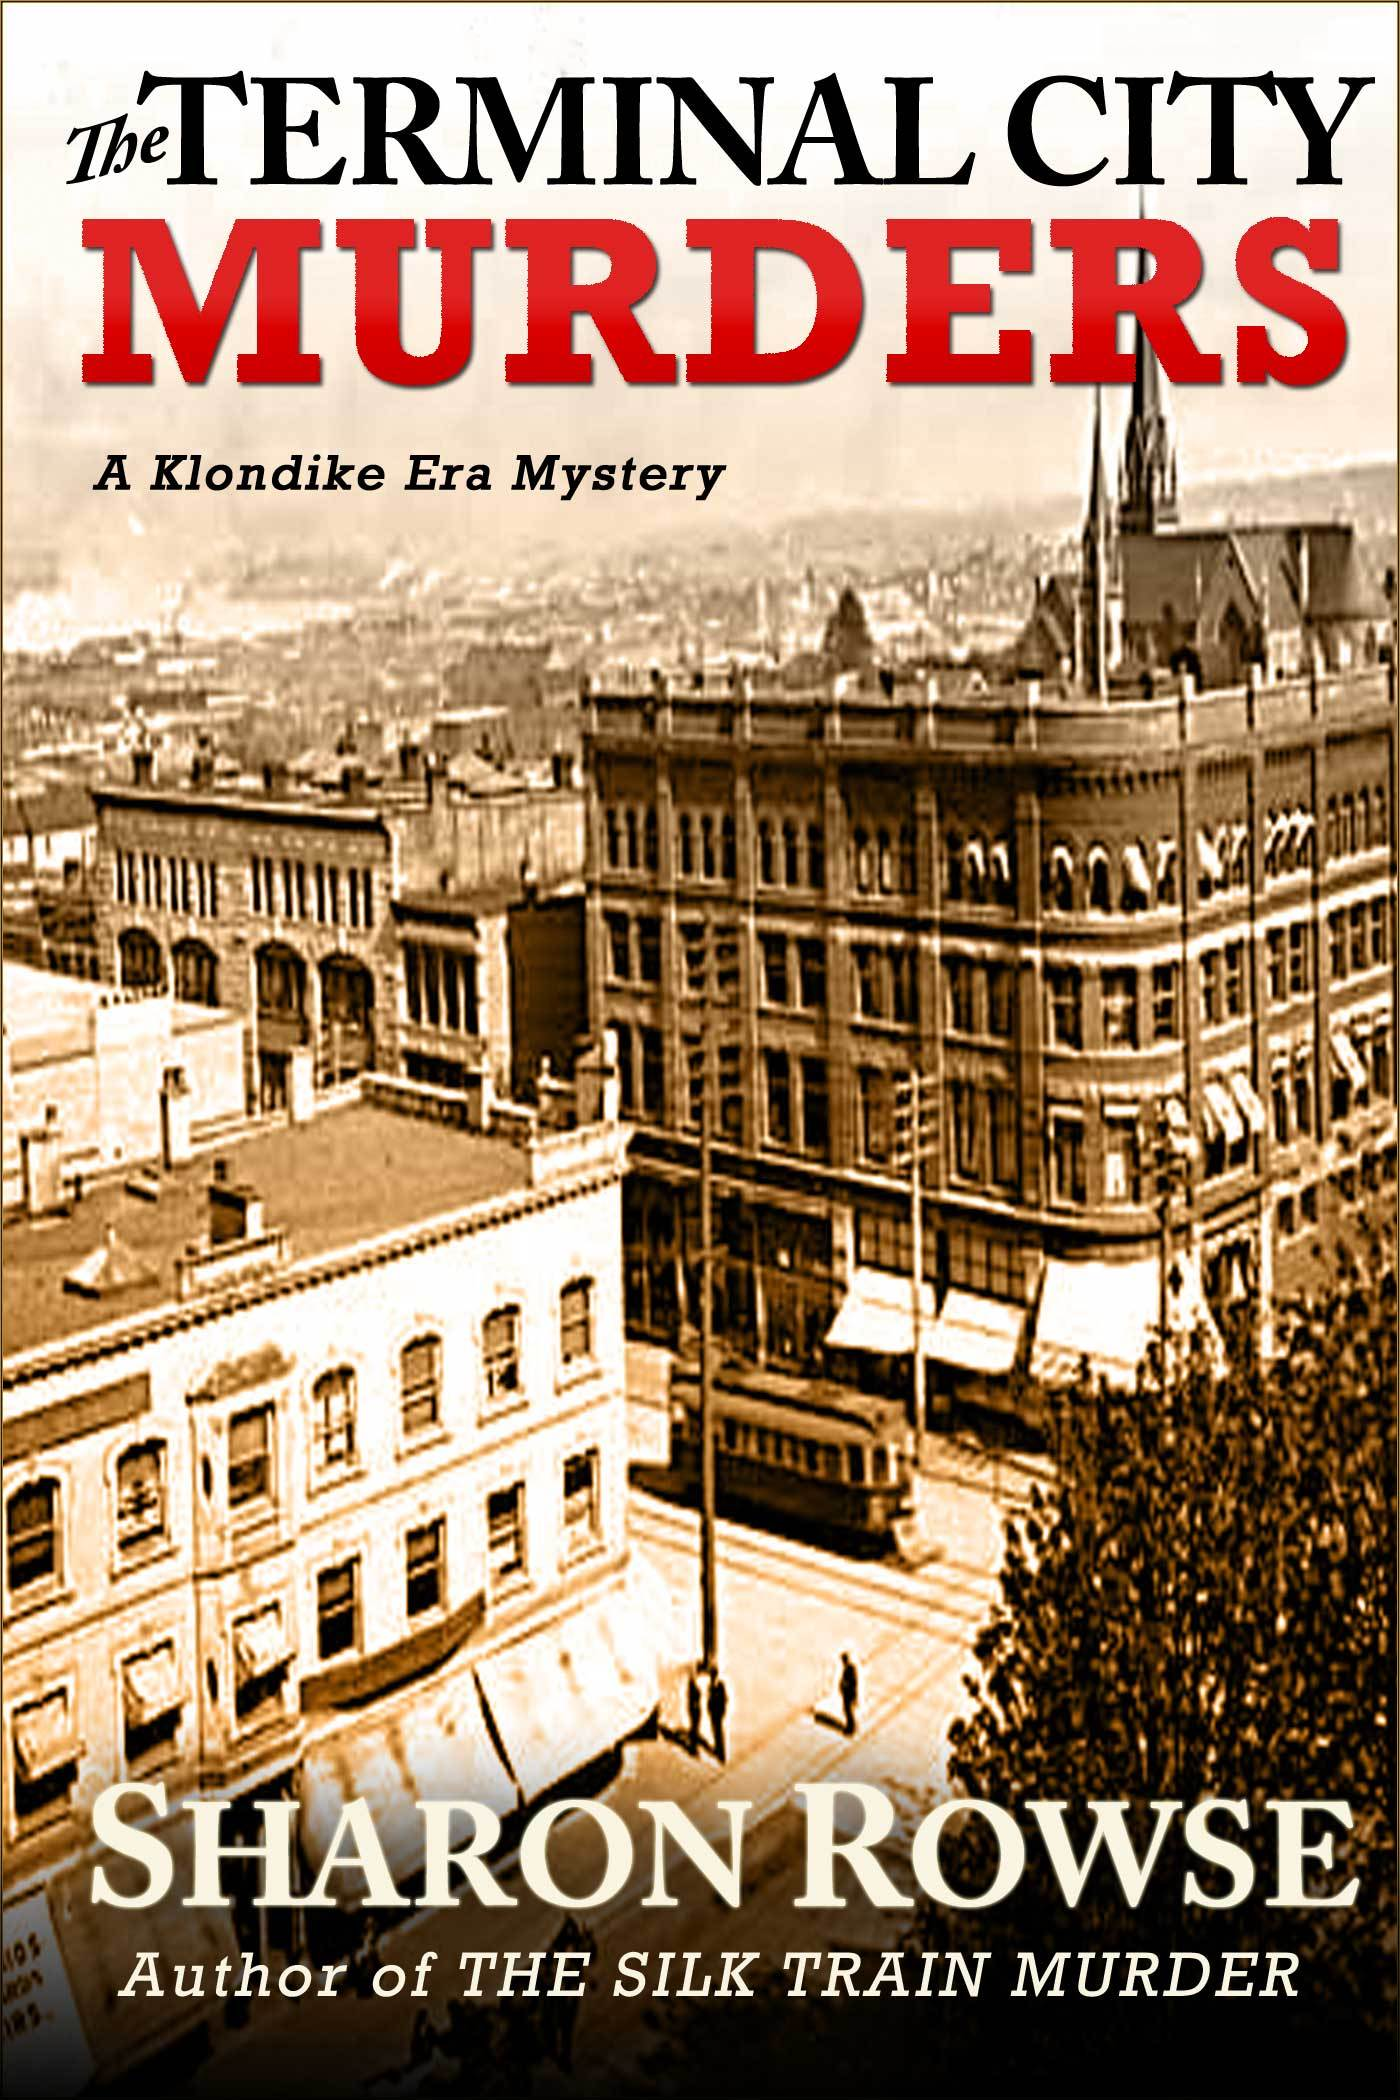 The Terminal City Murders (Klondike Era Mysteries, #4) Sharon Rowse